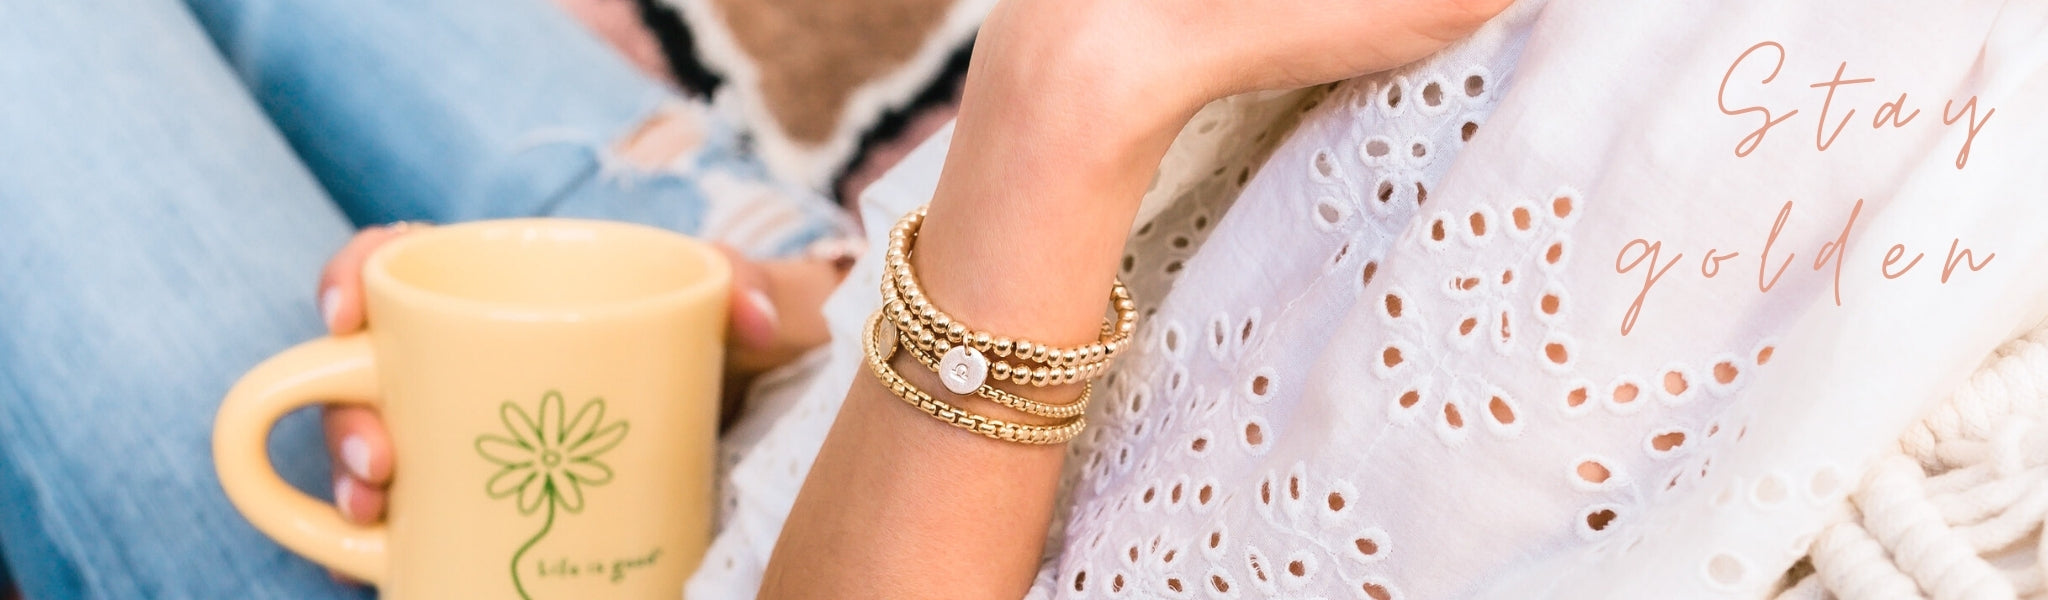 Gold Beaded Bracelets - Meaningful Jewelry - Gifts for Her - Initial Disc - Blooming Lotus Jewelry